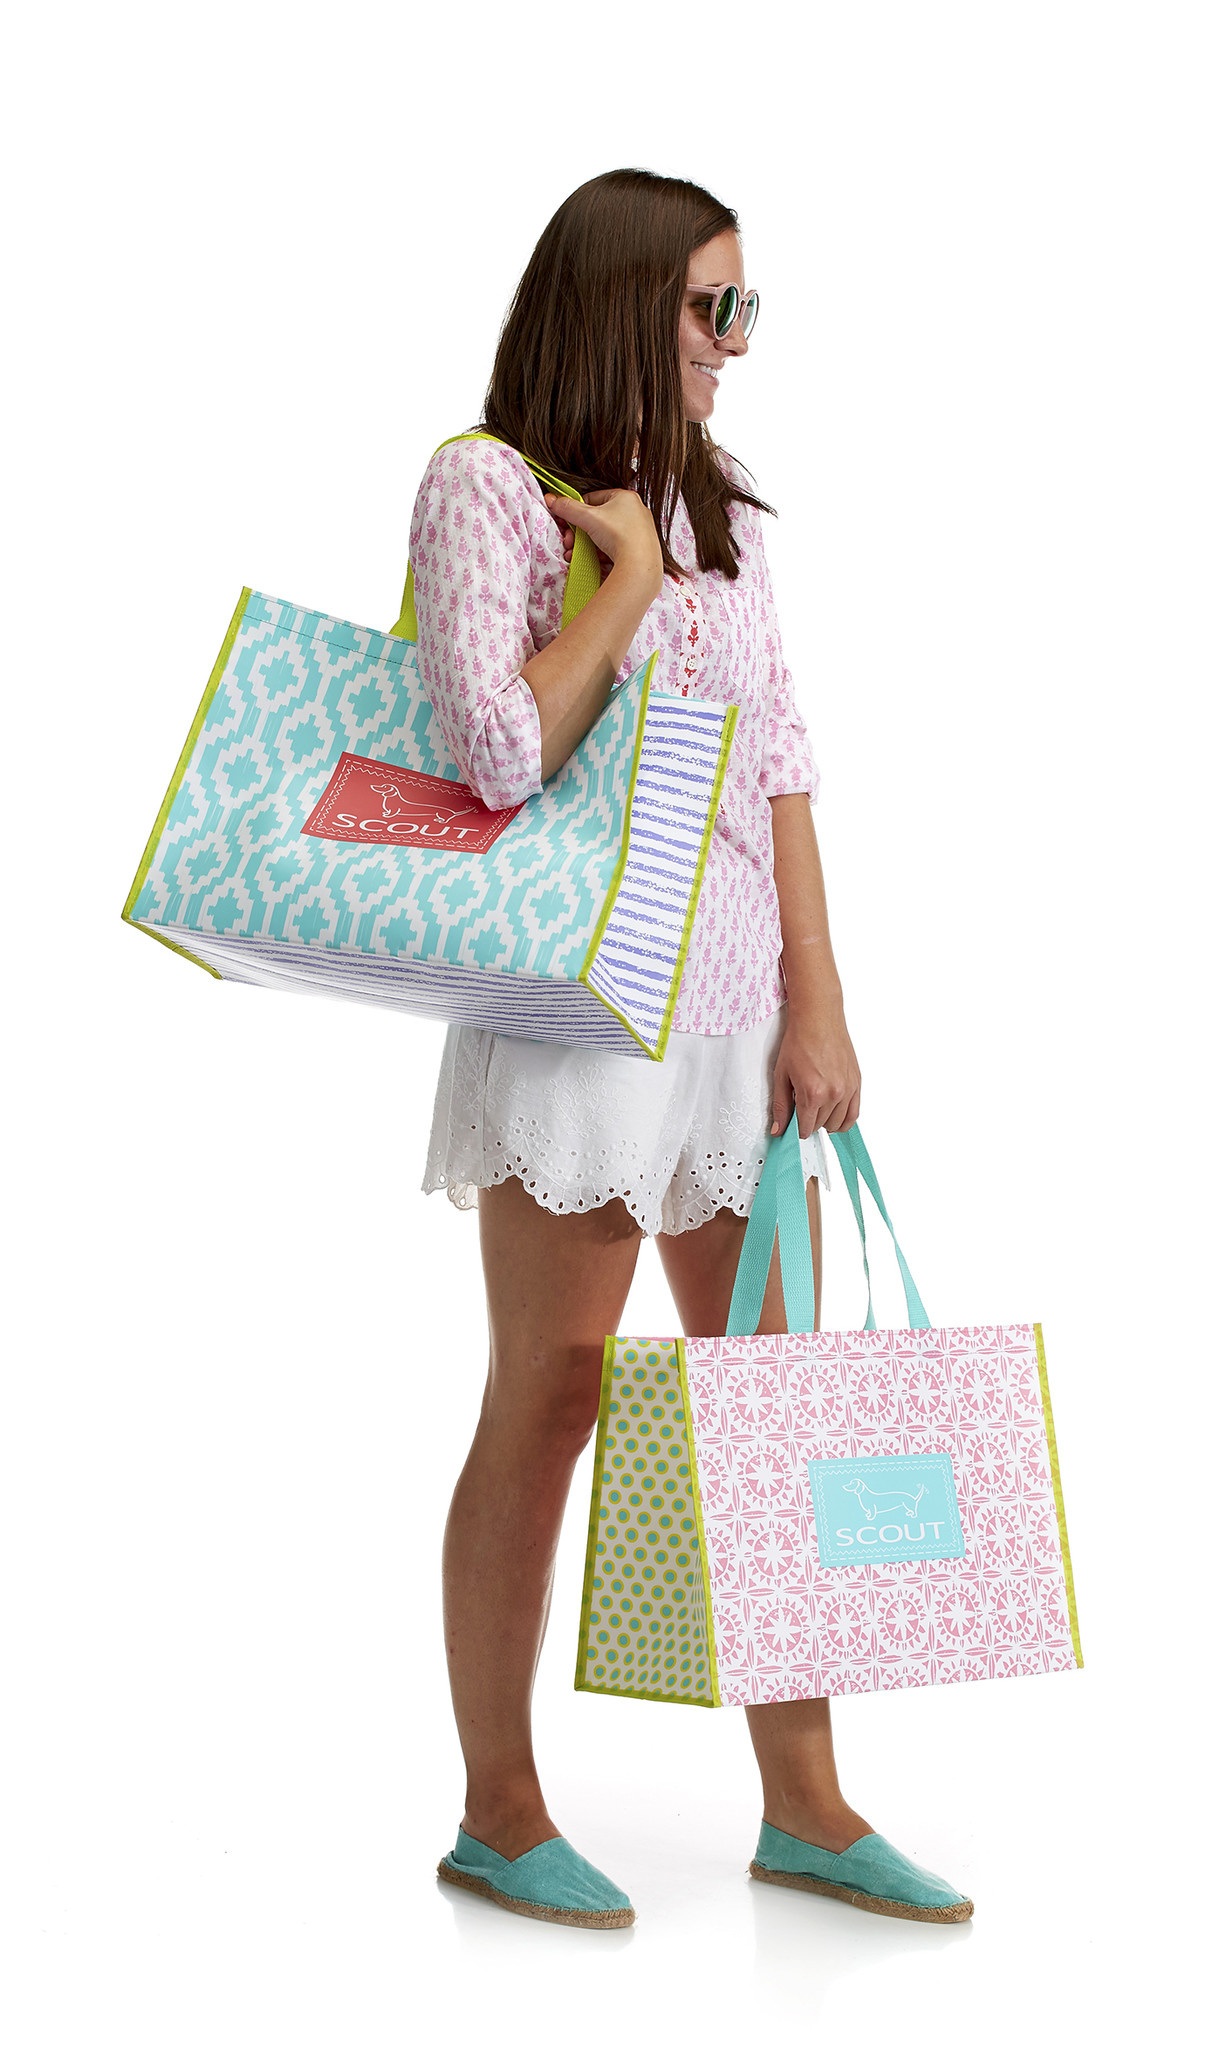 Jewelry Handbags Apparel Gifts at Digs N Gifts in Fort Lauderdale-By-The-Sea